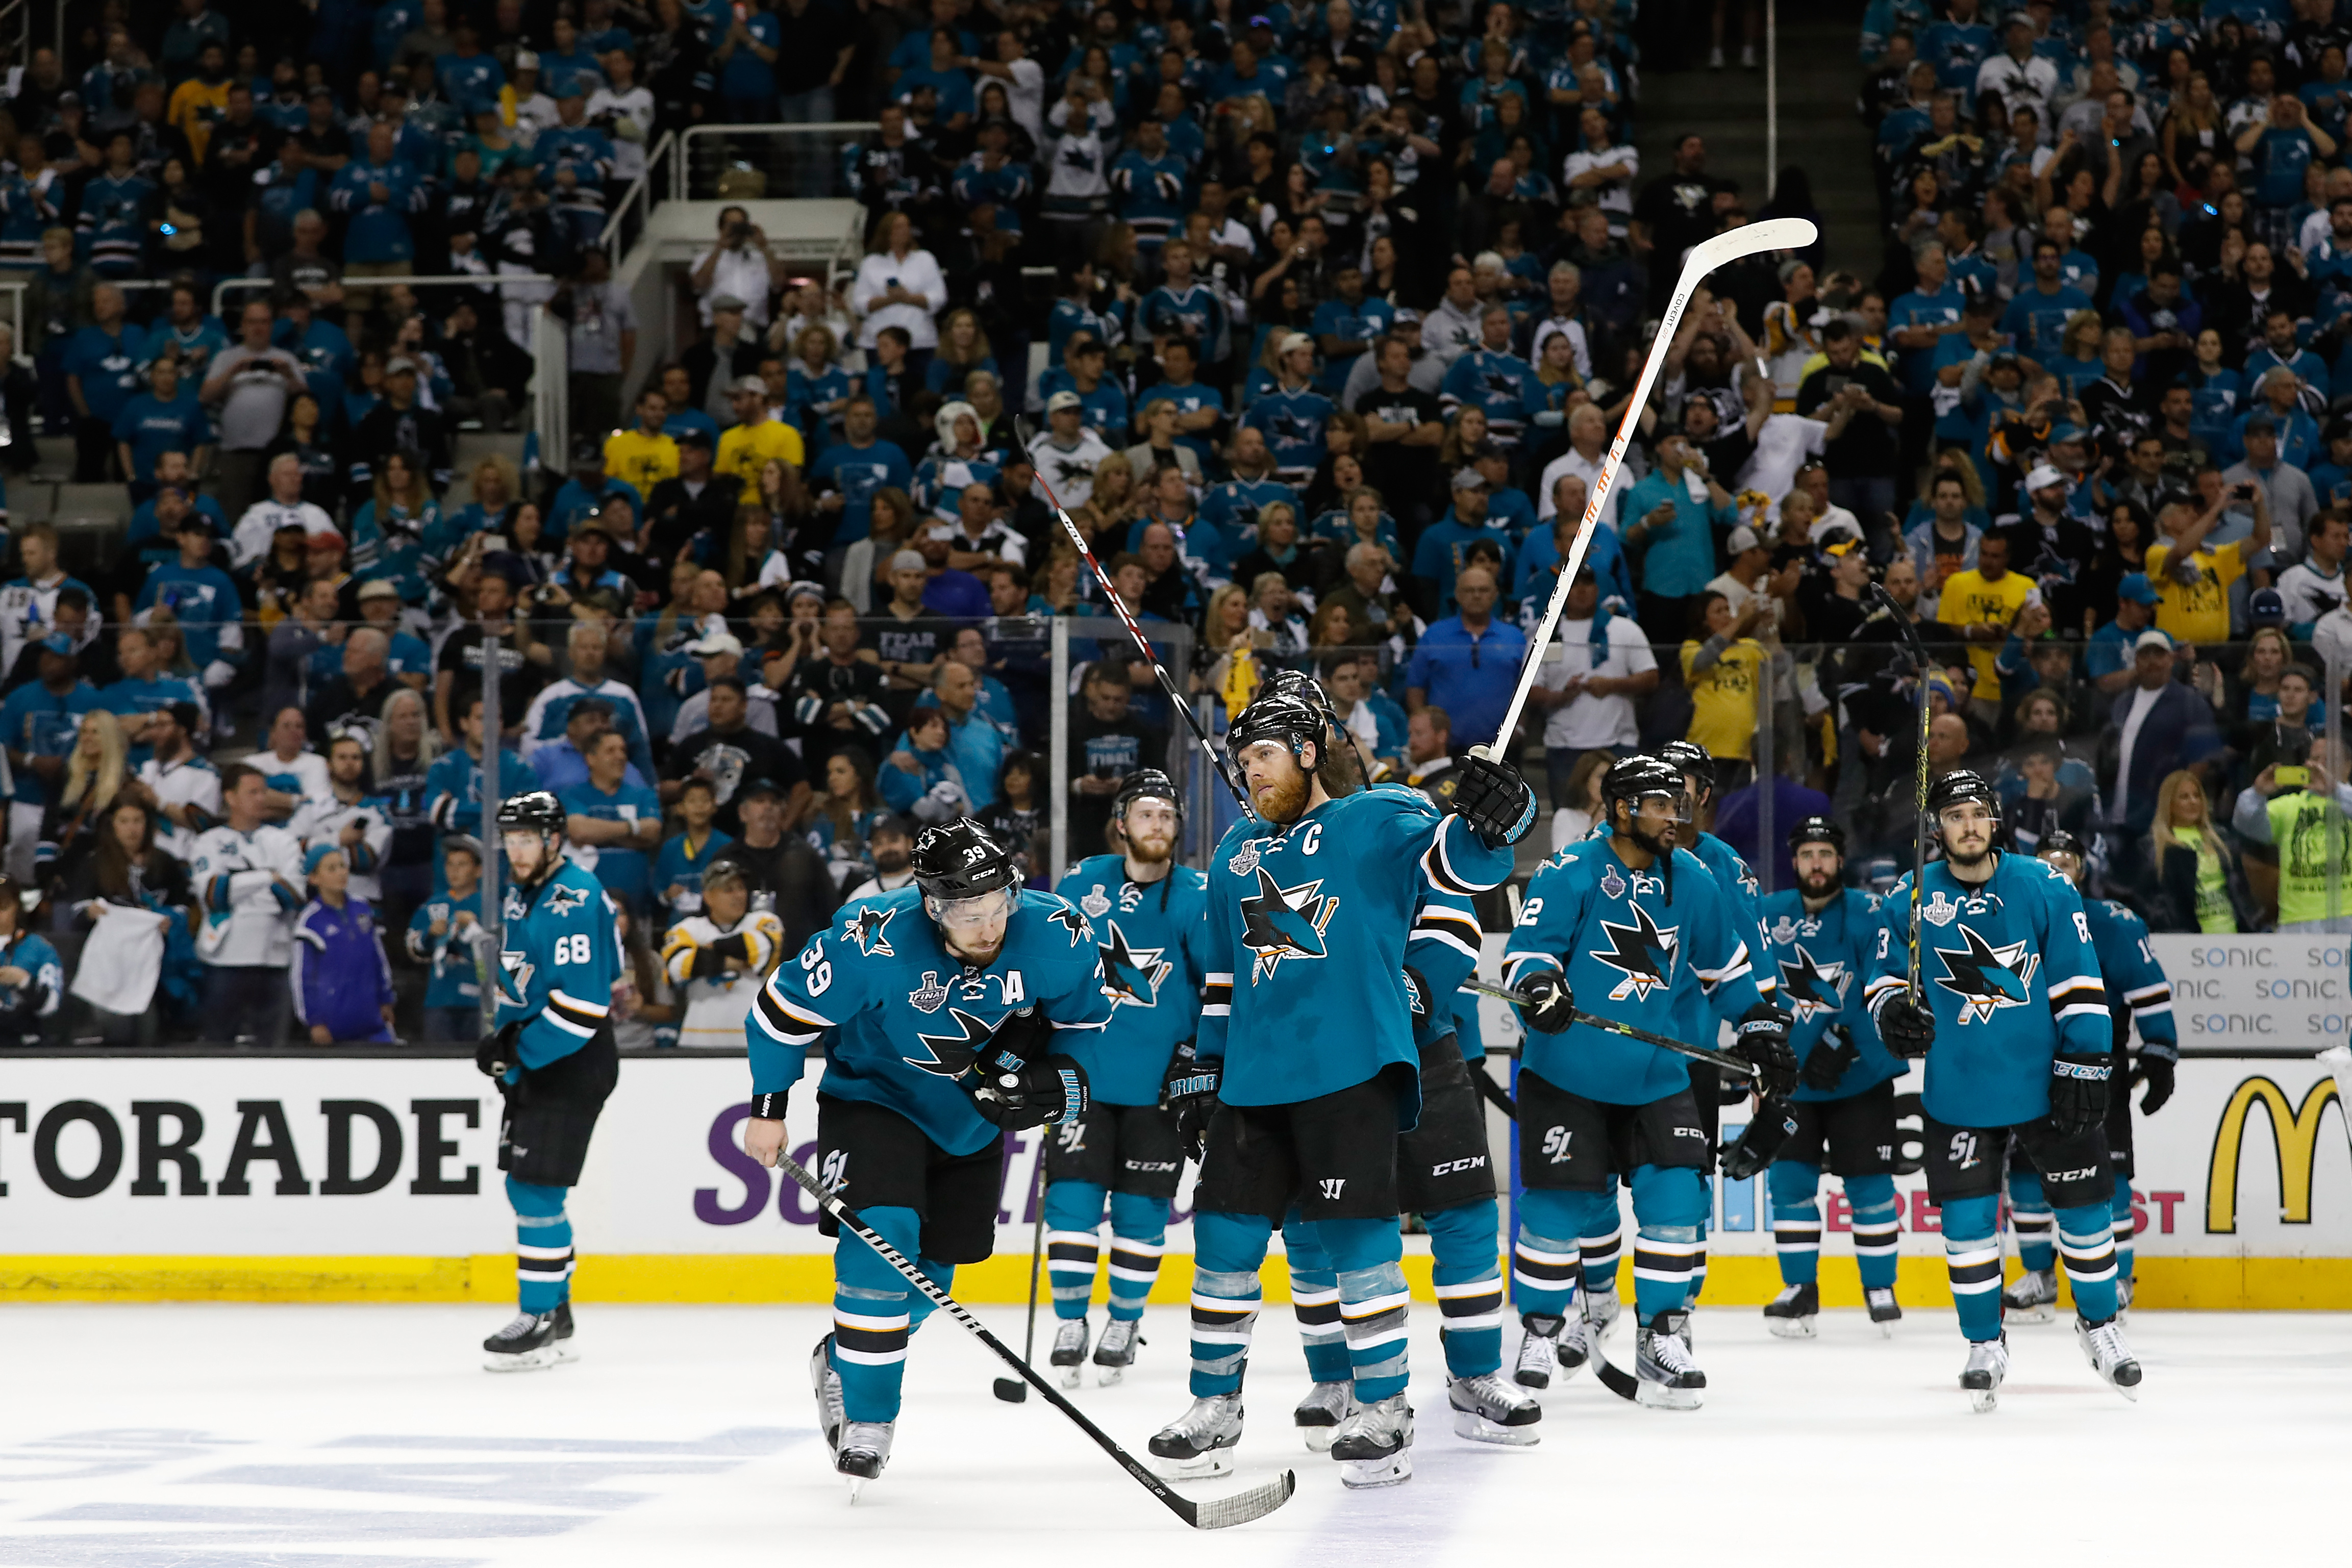 SAN JOSE, CA - JUNE 12: The San Jose Sharks salute their fans after their teams 3-1 defeat to the Pittsburgh Penguins in Game Six of the 2016 NHL Stanley Cup Final at SAP Center on June 12, 2016 in San Jose, California. The Pittsburgh Penguins defeat the